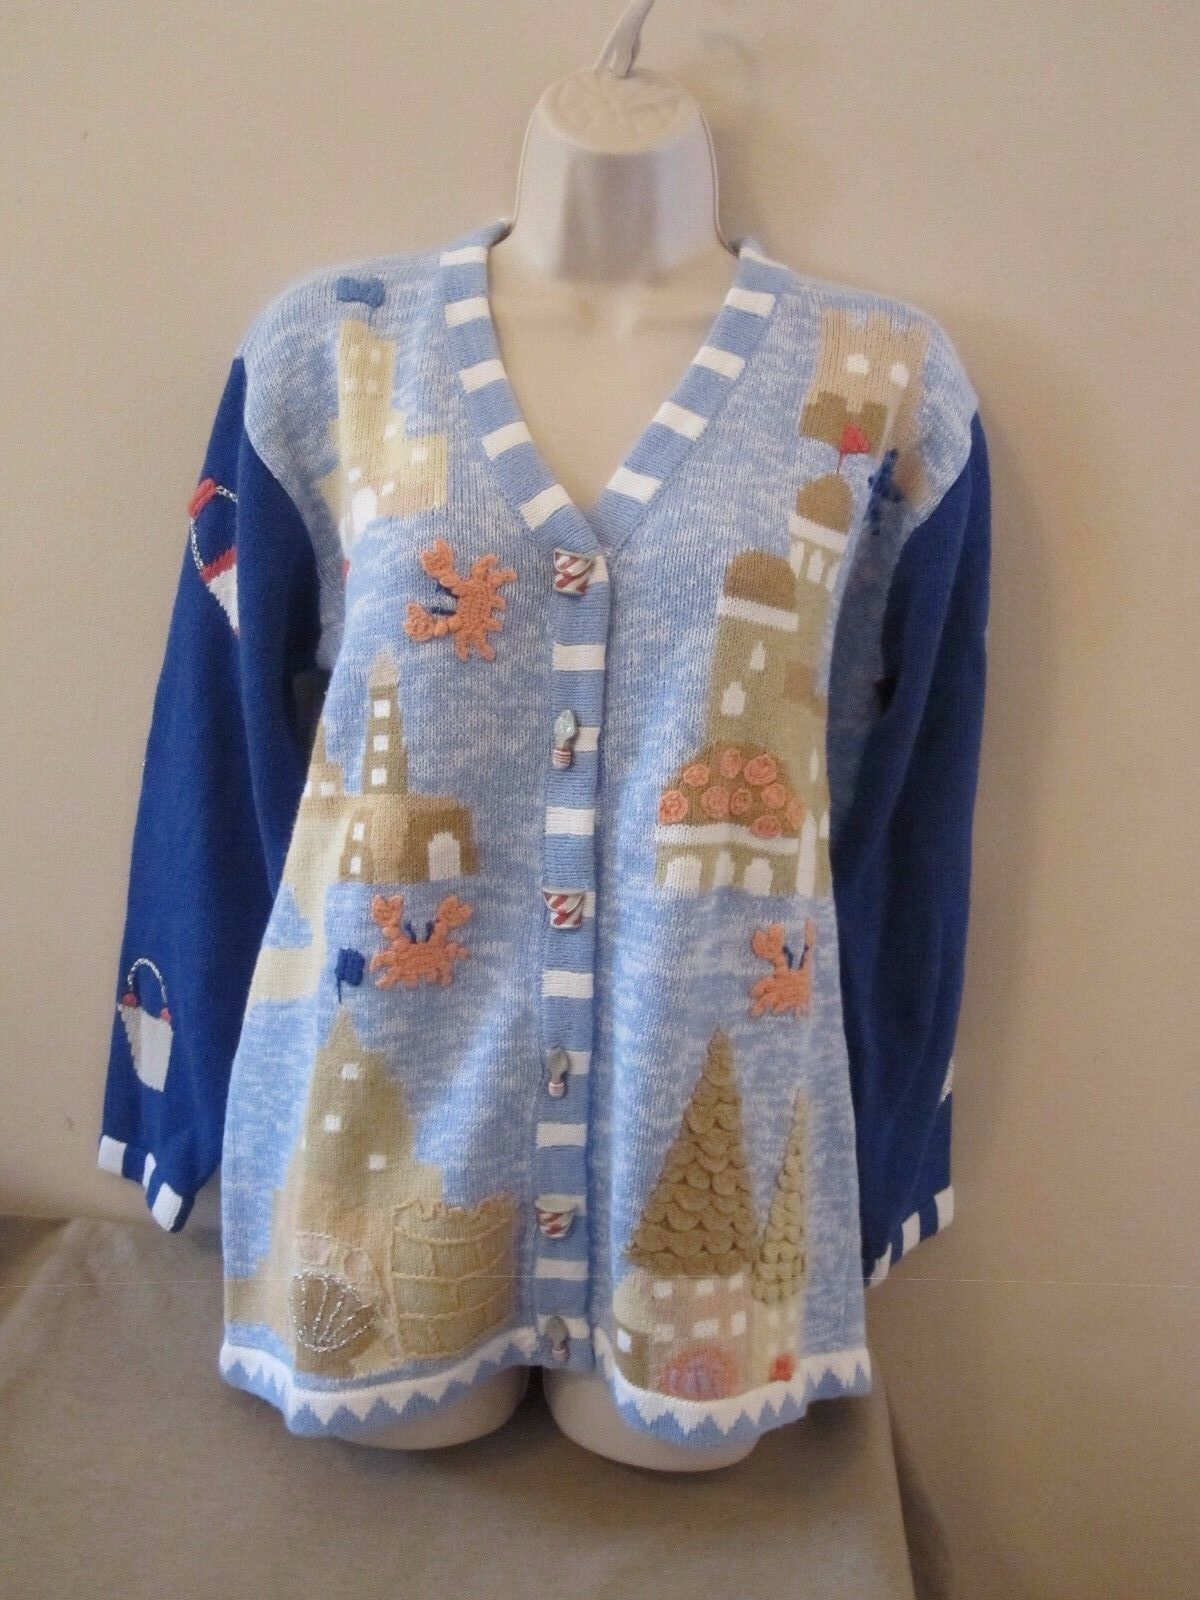 Storybook Knits bluee 3D Cardigan Sweater Sand Castles Beach Crabs Shell Sz Small